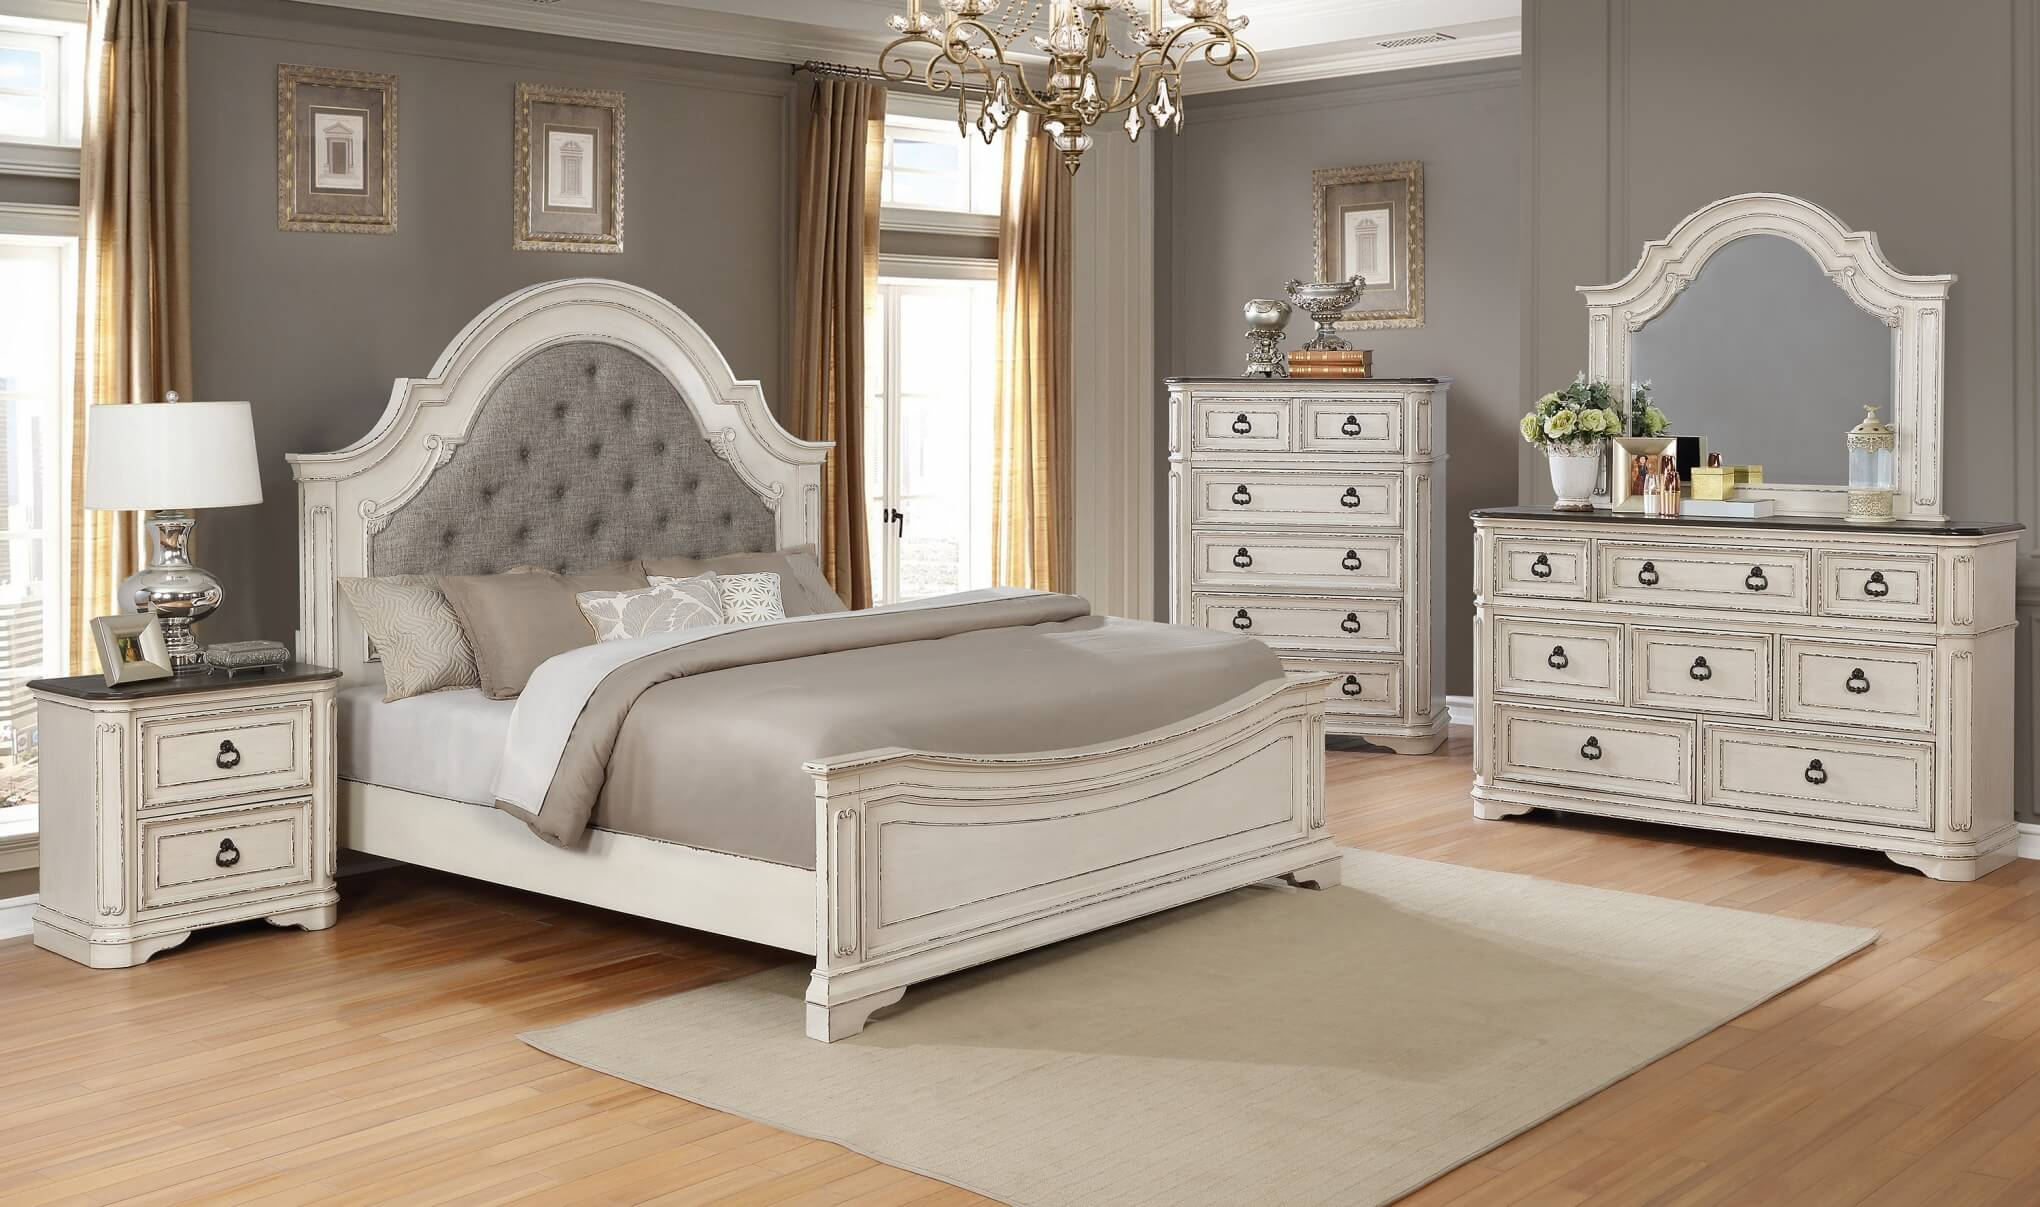 B1640 Magnolia Antique White Bedroom Set